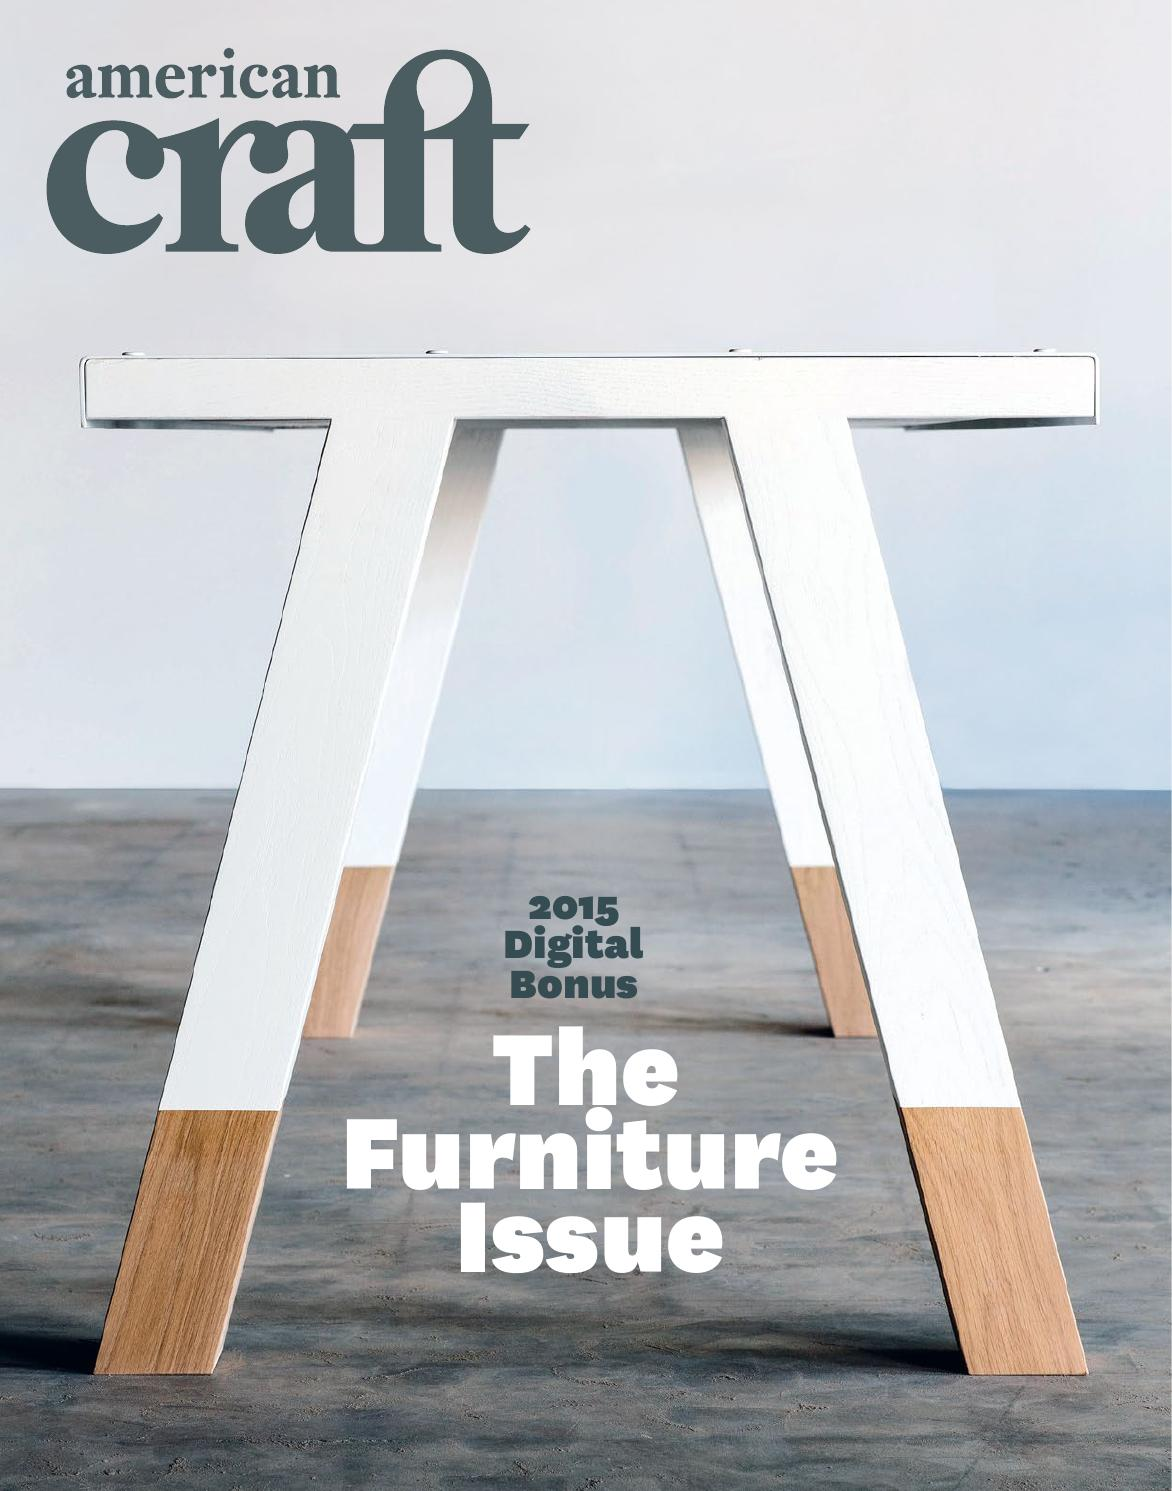 American Craft 2015 Digital Bonus: The Furniture Issue By American Craft  Council   Issuu